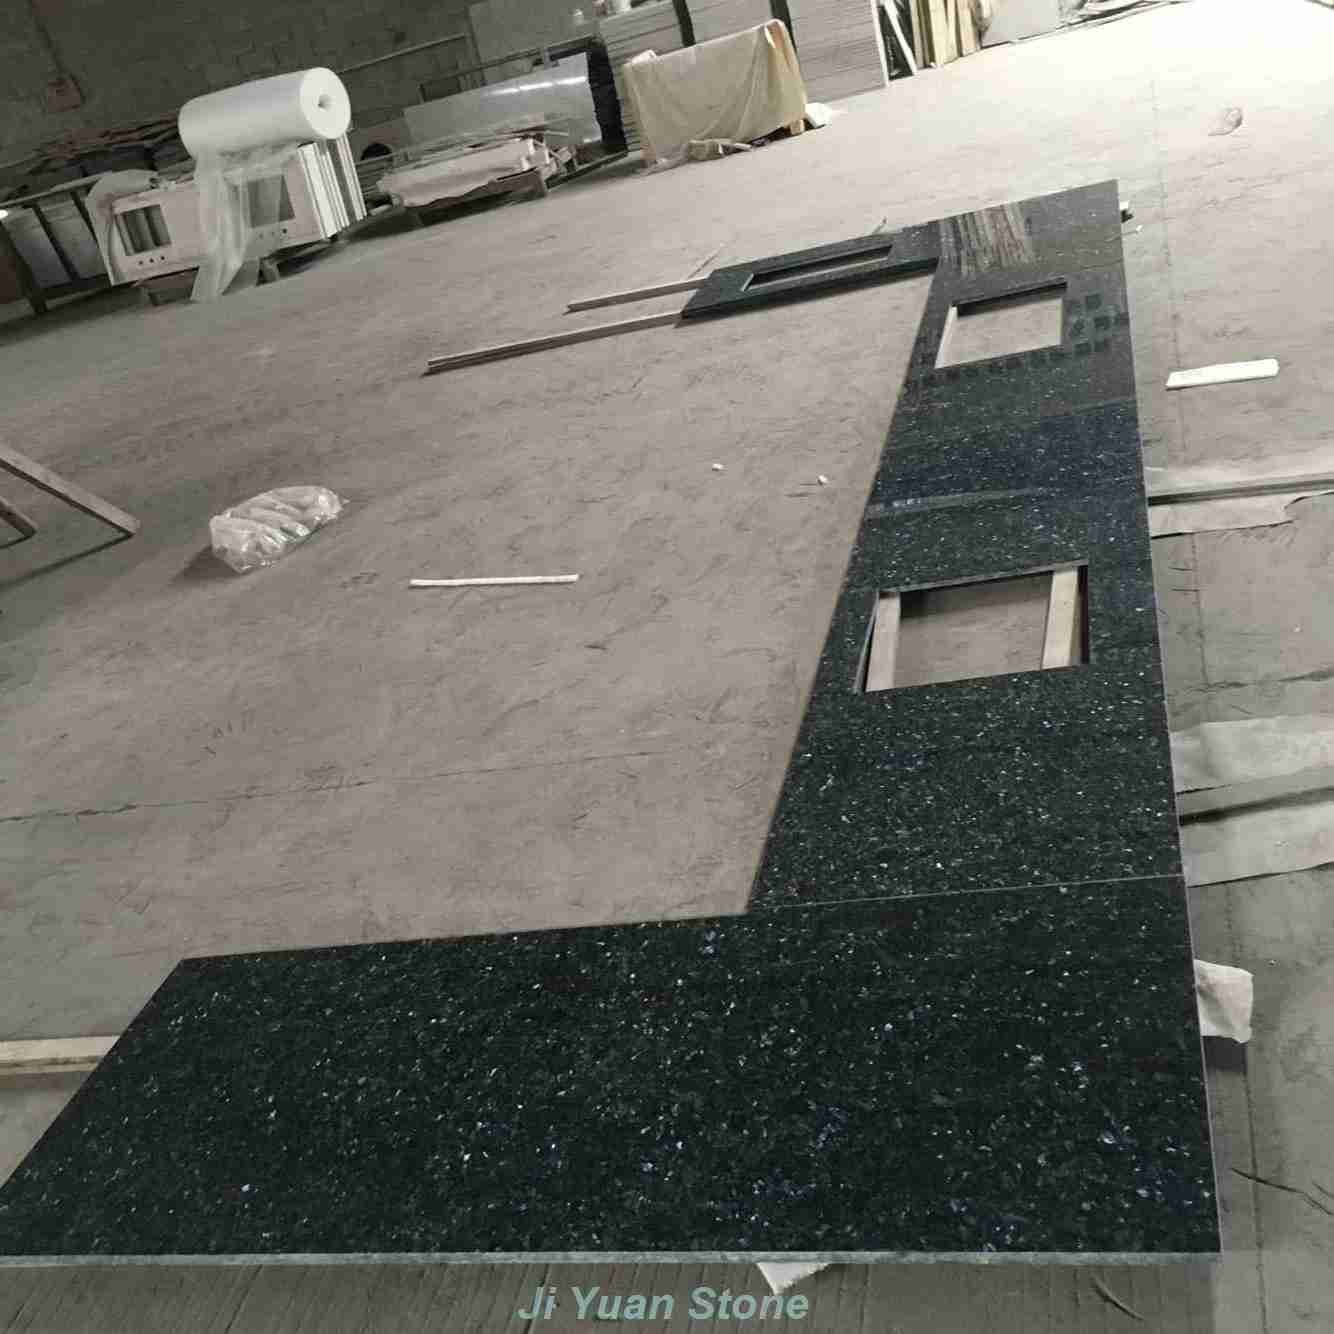 Blue pearl granite price,blue pearl granite countertop price,blue pearl tile,blue pearl granite price per square foot,blue granite worktop,blue pearl backsplash